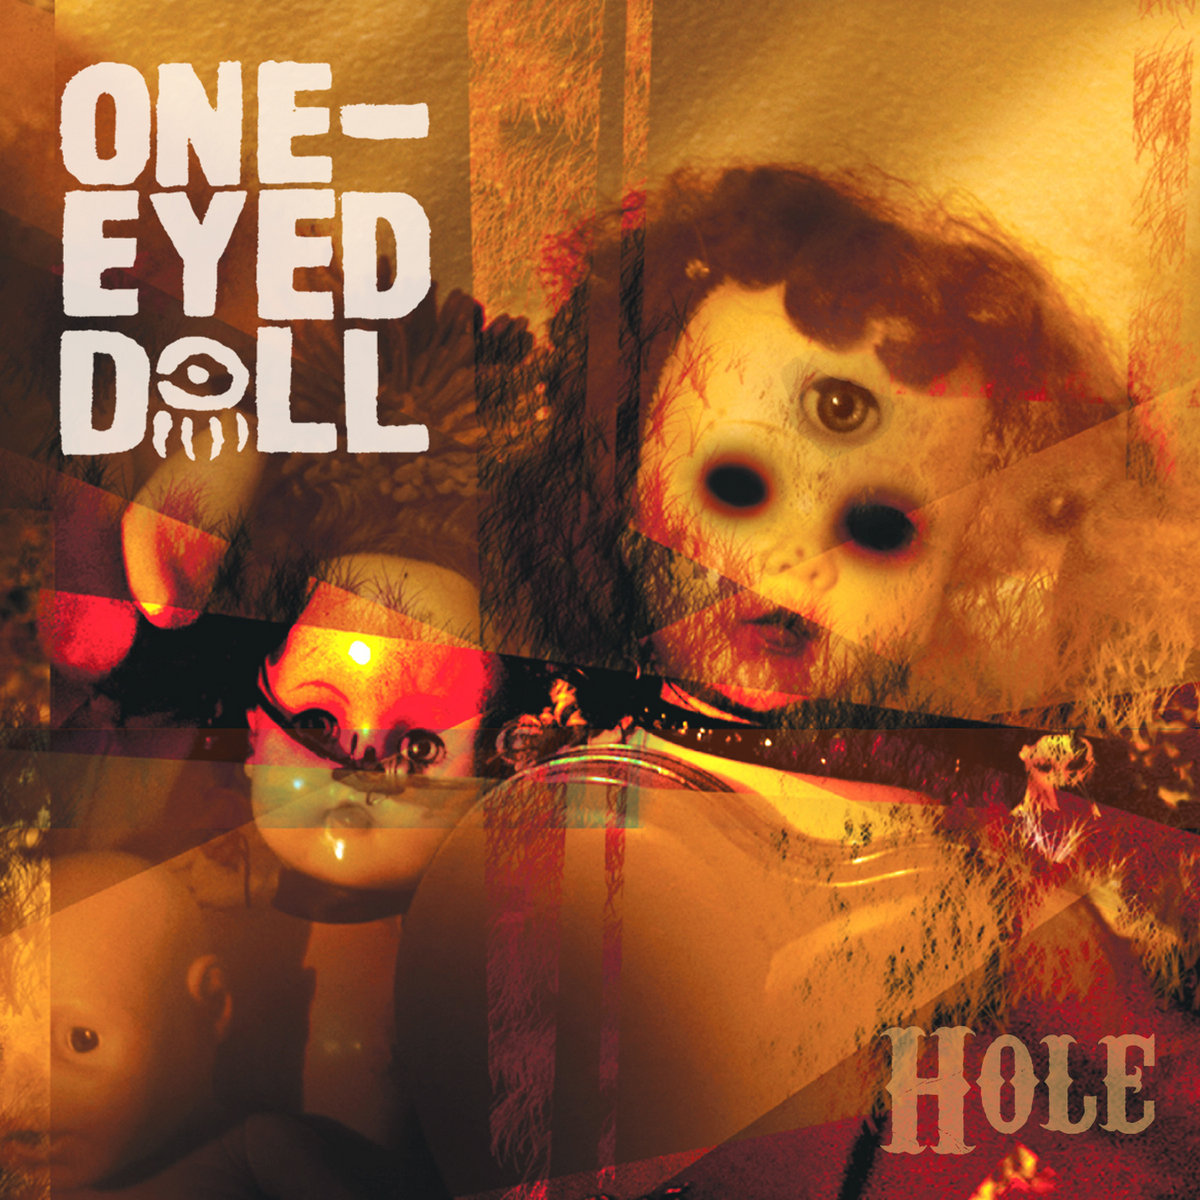 one eyed doll torrent